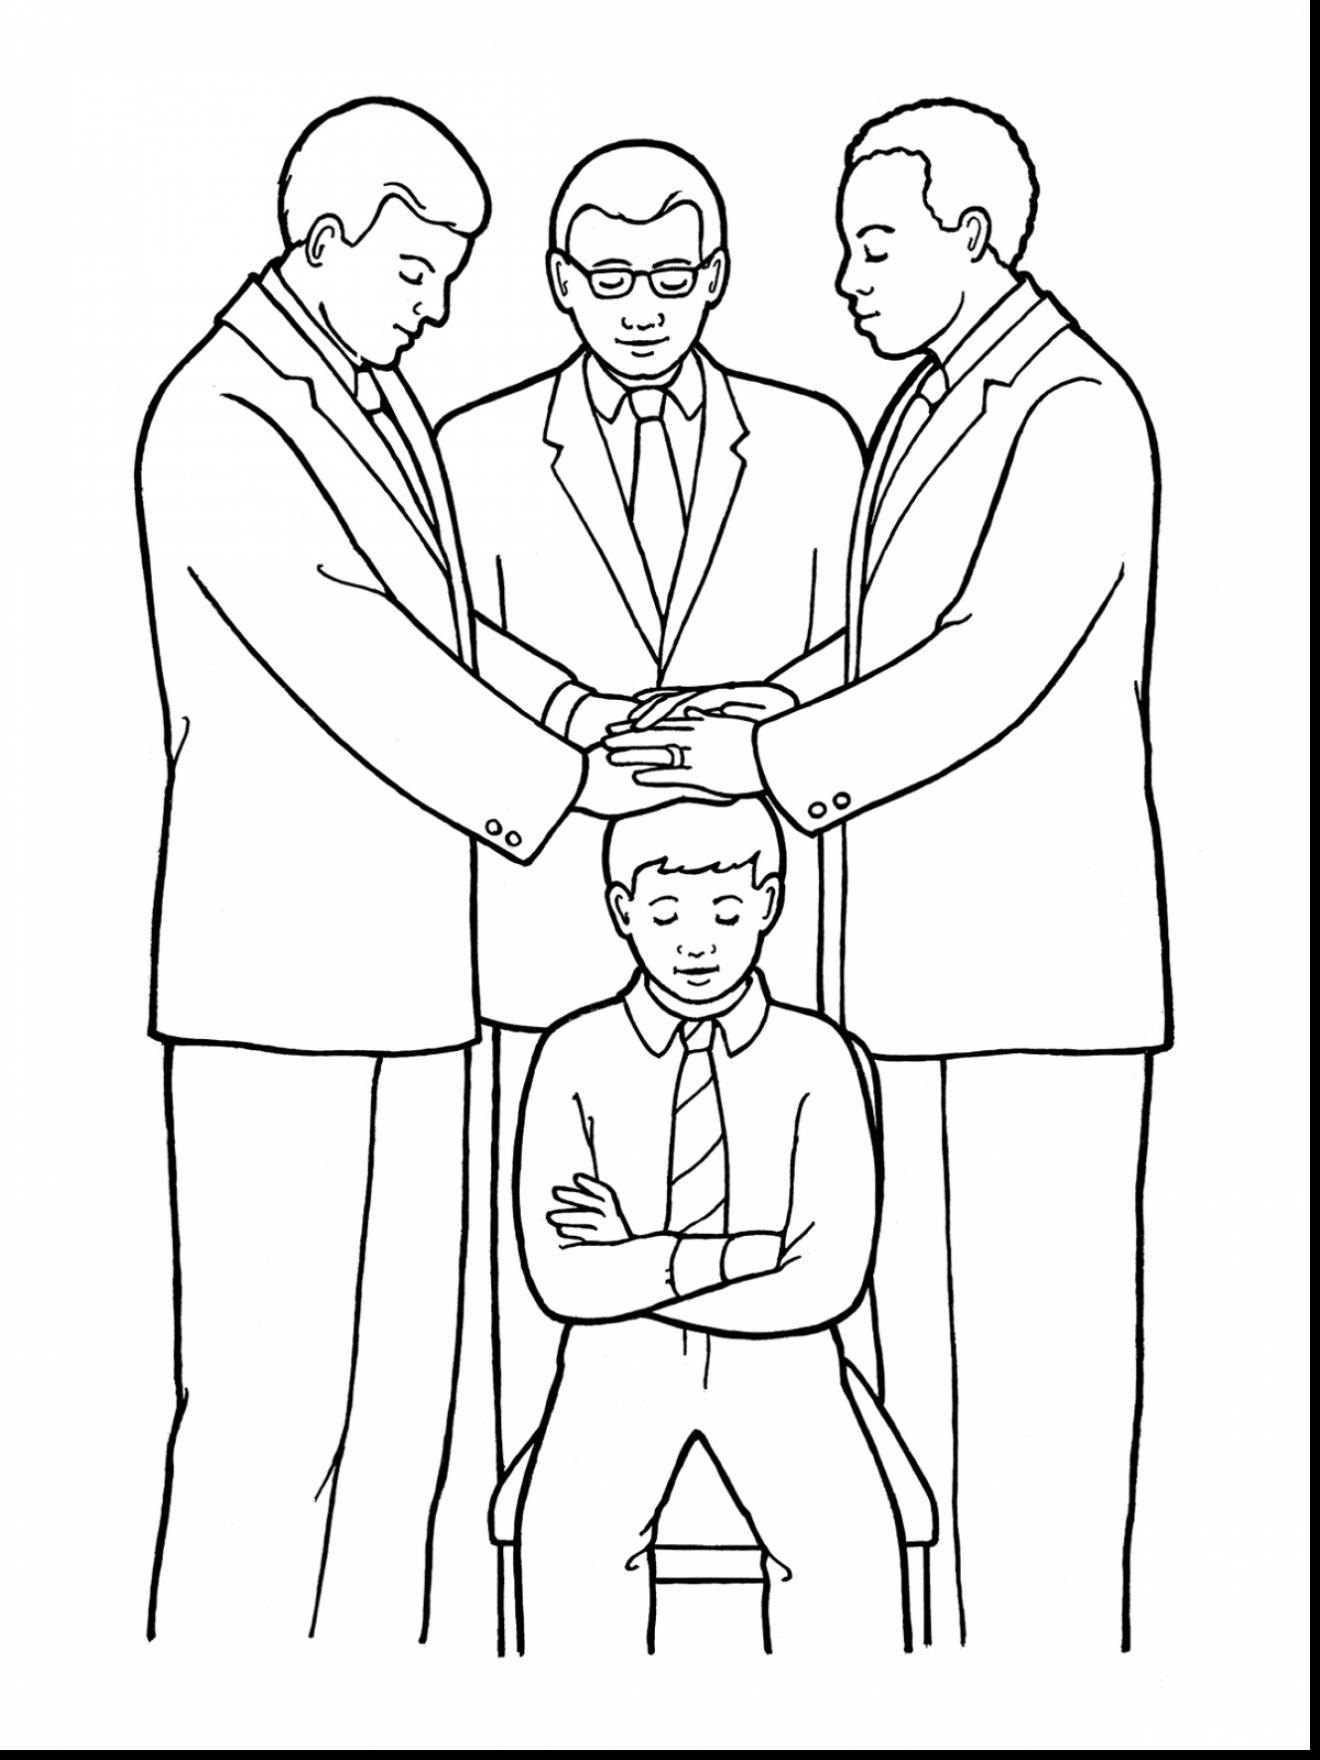 lds coloring pages more stuff for the new year with images lds pages coloring lds